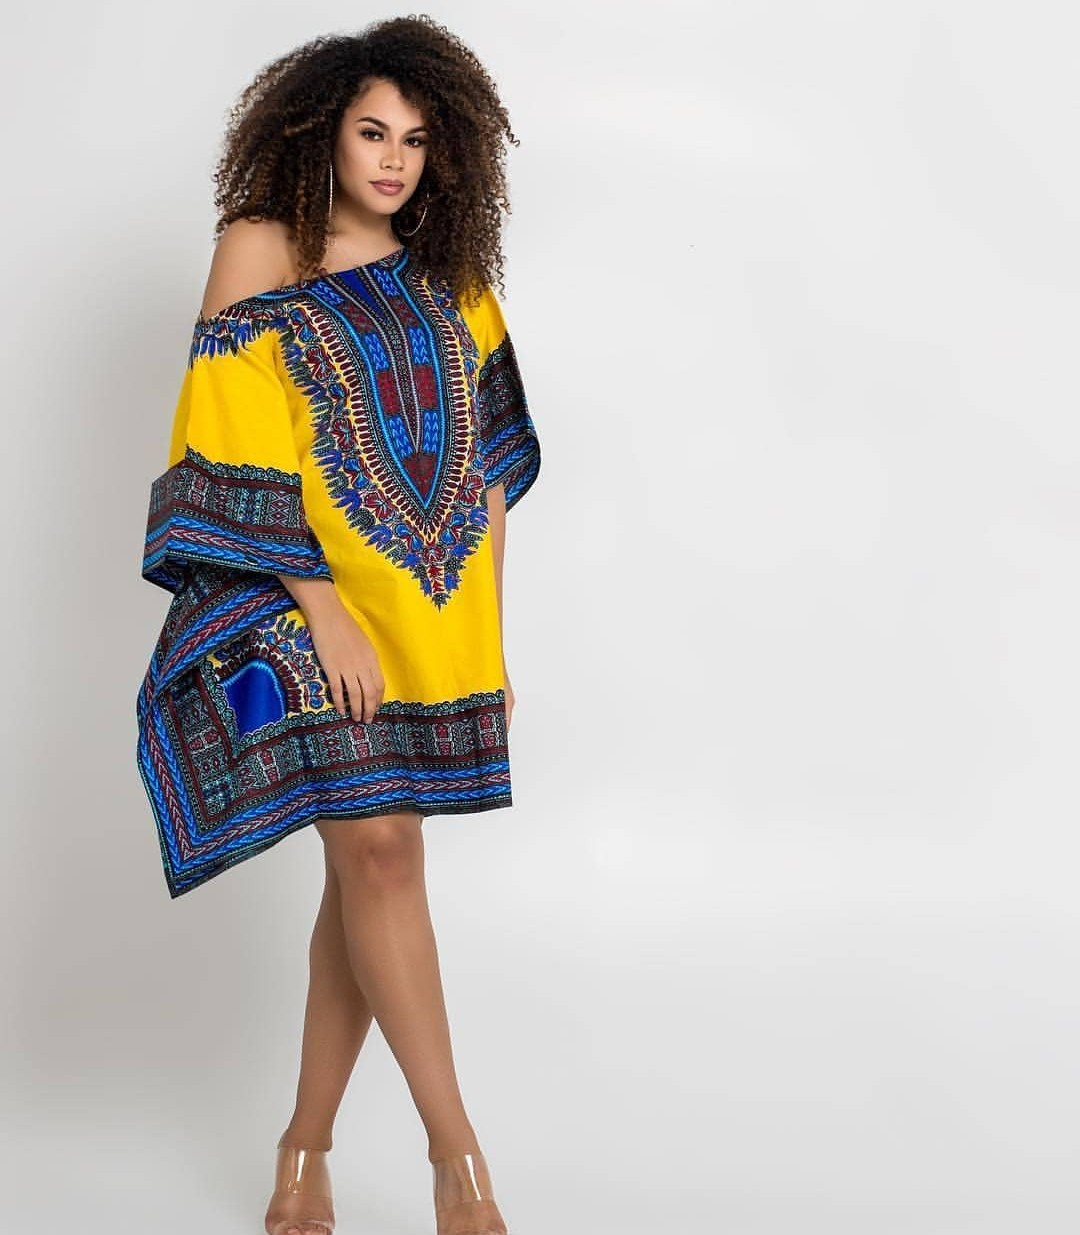 COLORFUL 2020 ANKARA MAXI DRESS TO COMPLETE YOUR ESPECIAL LOOK! 3